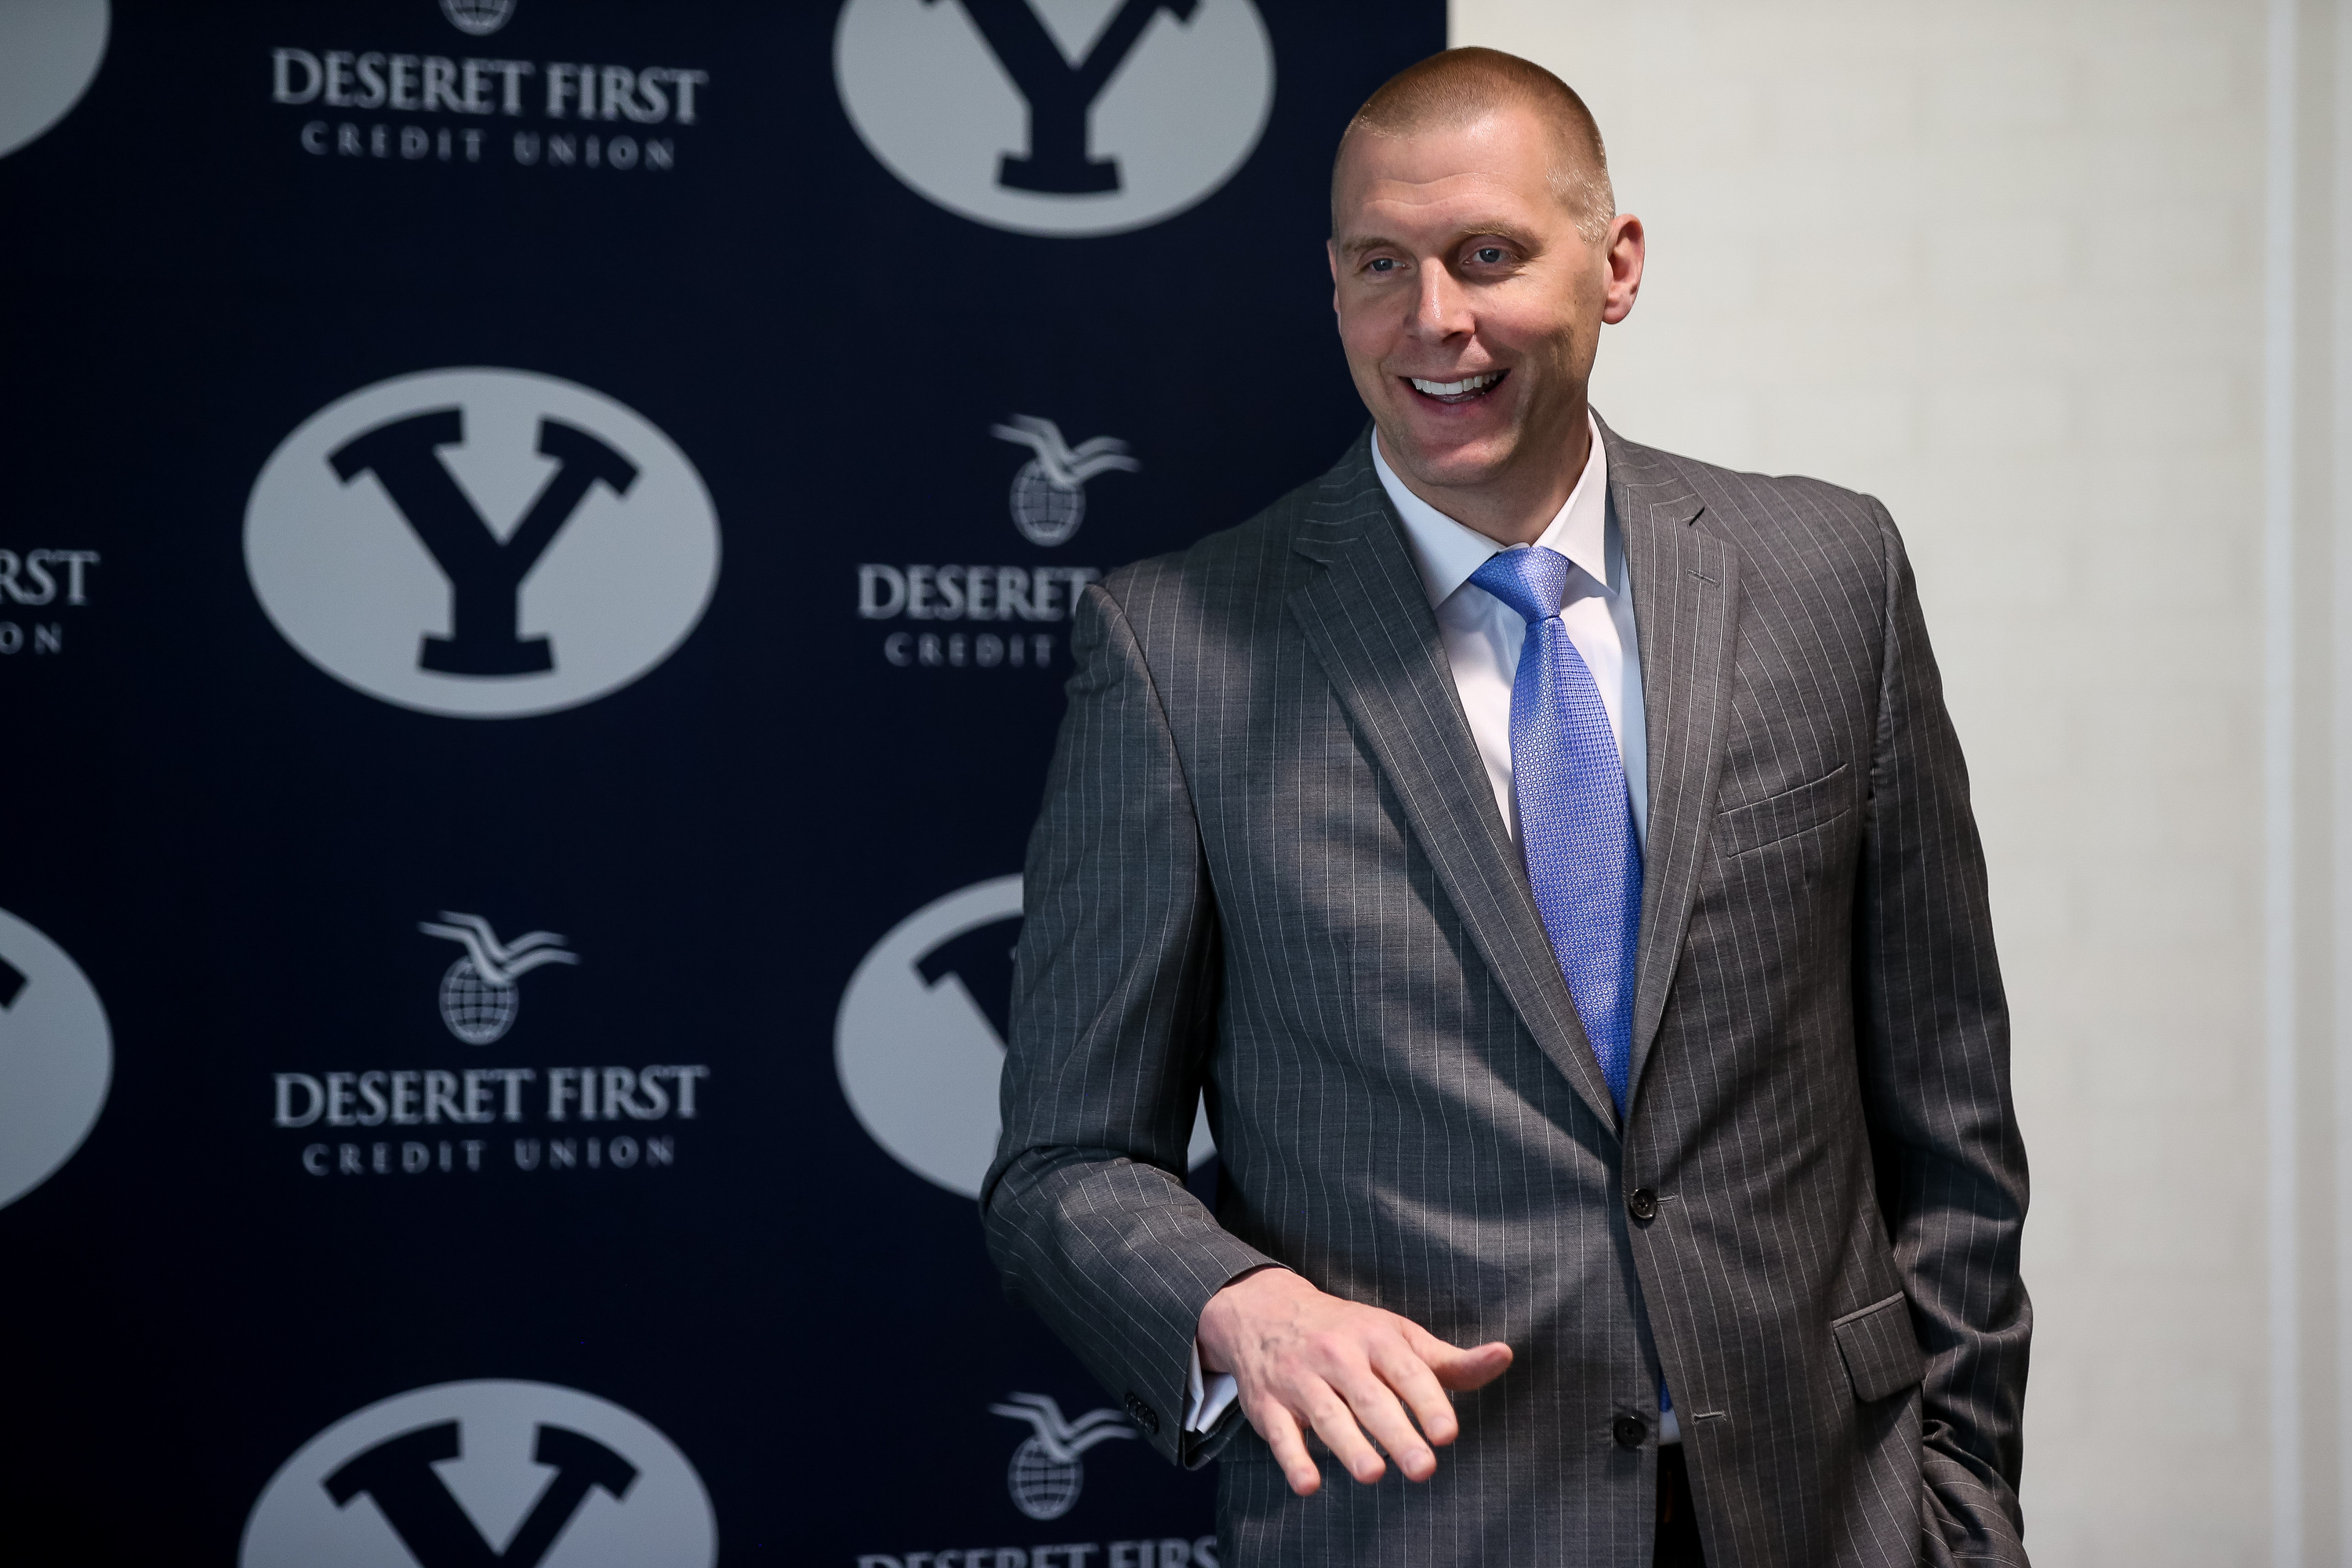 Brigham Young University basketball head coach Mark Pope speaks a press conference convened to introduce his new assistant coaches at the Marriott Center Annex in Provo on Thursday, April 25, 2019.